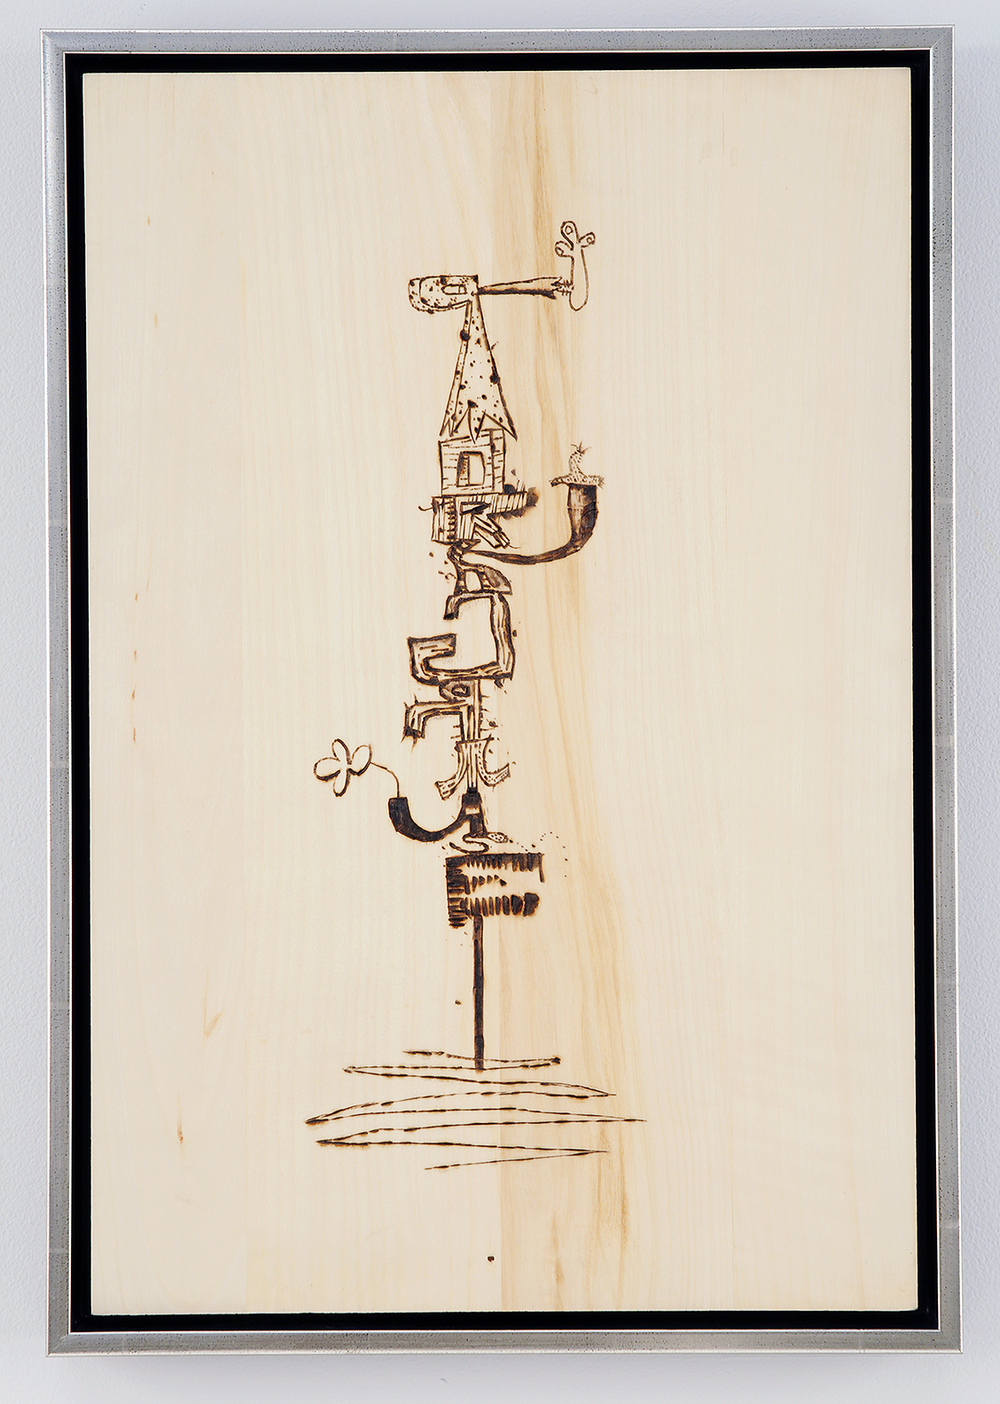 WAYNE WHITE, Pork Grease, 2008, wood burning, framed, 18 x 12 inches